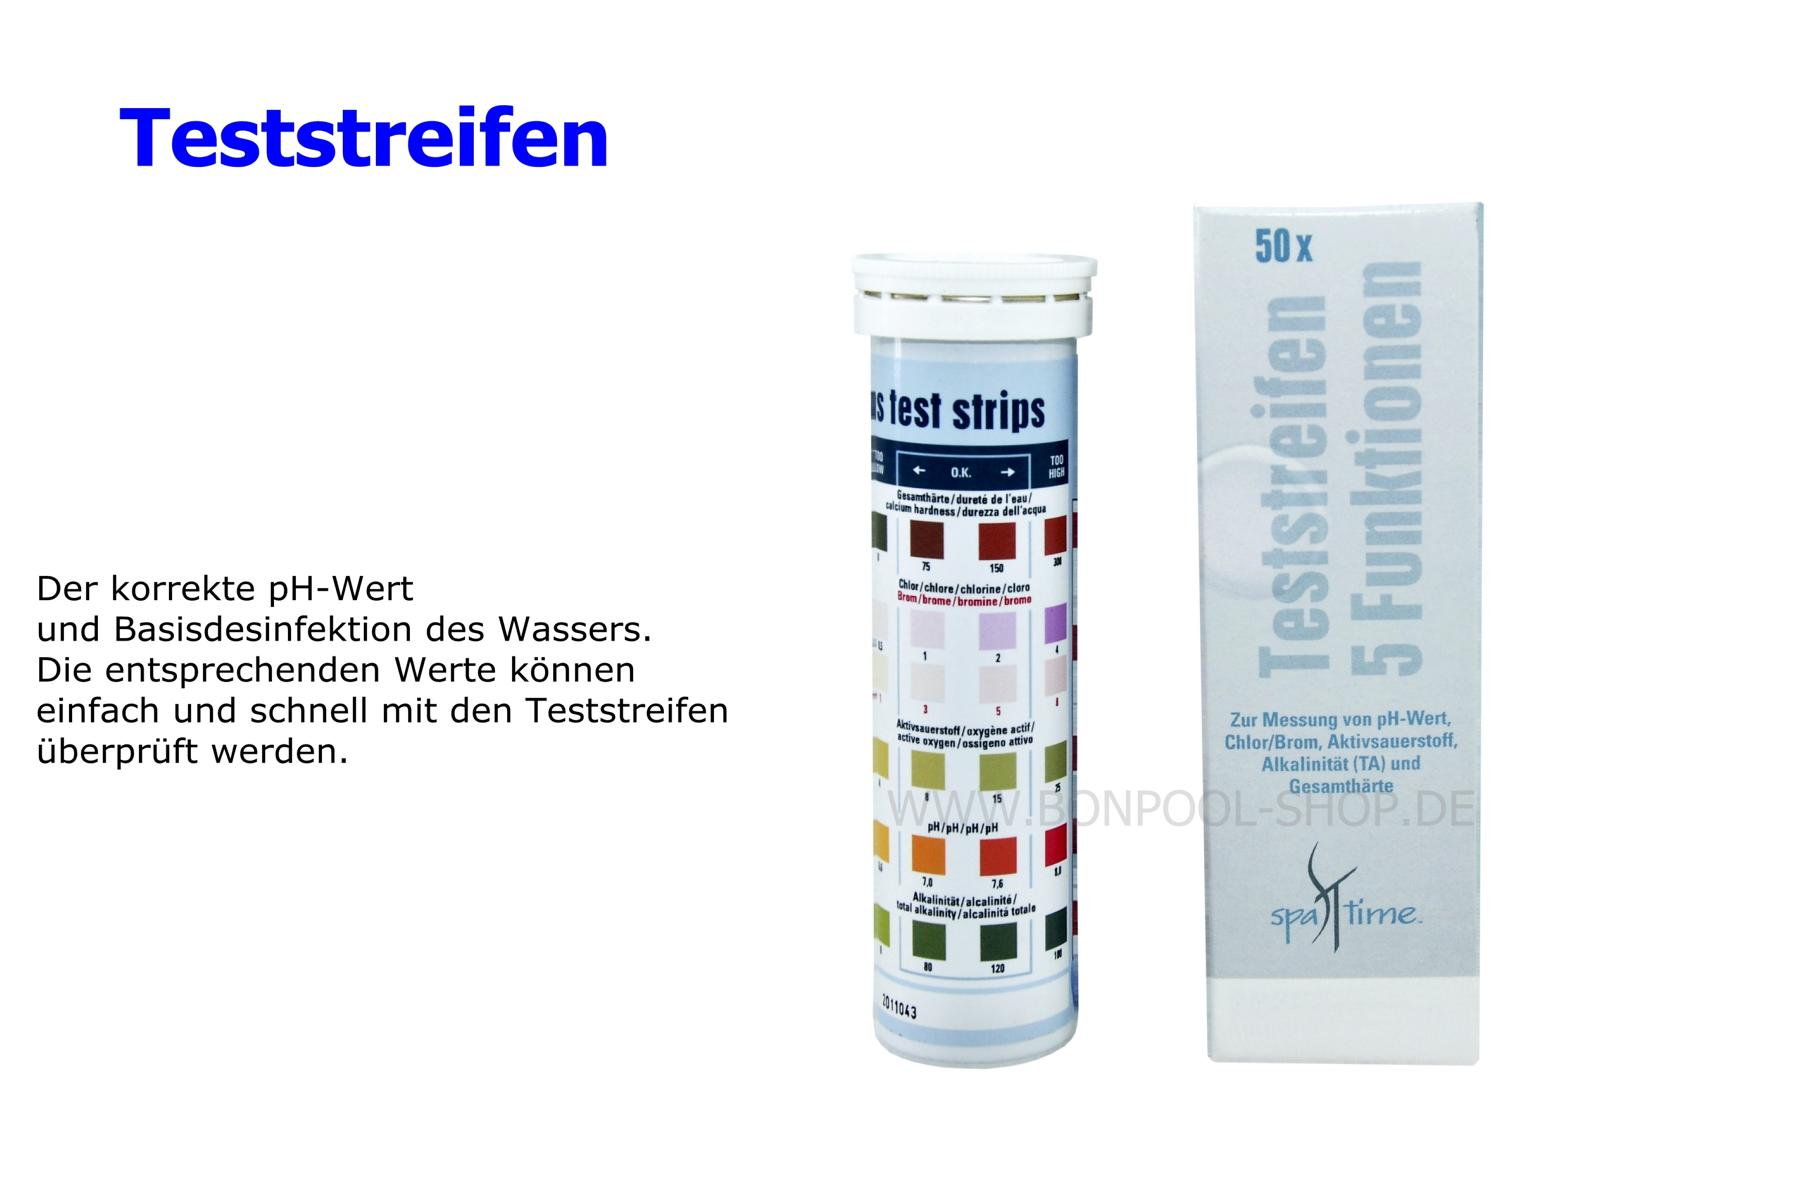 Poolheizung Test 50 Stk Teststreifen Ph Wert Chlor Brom Bon Pool